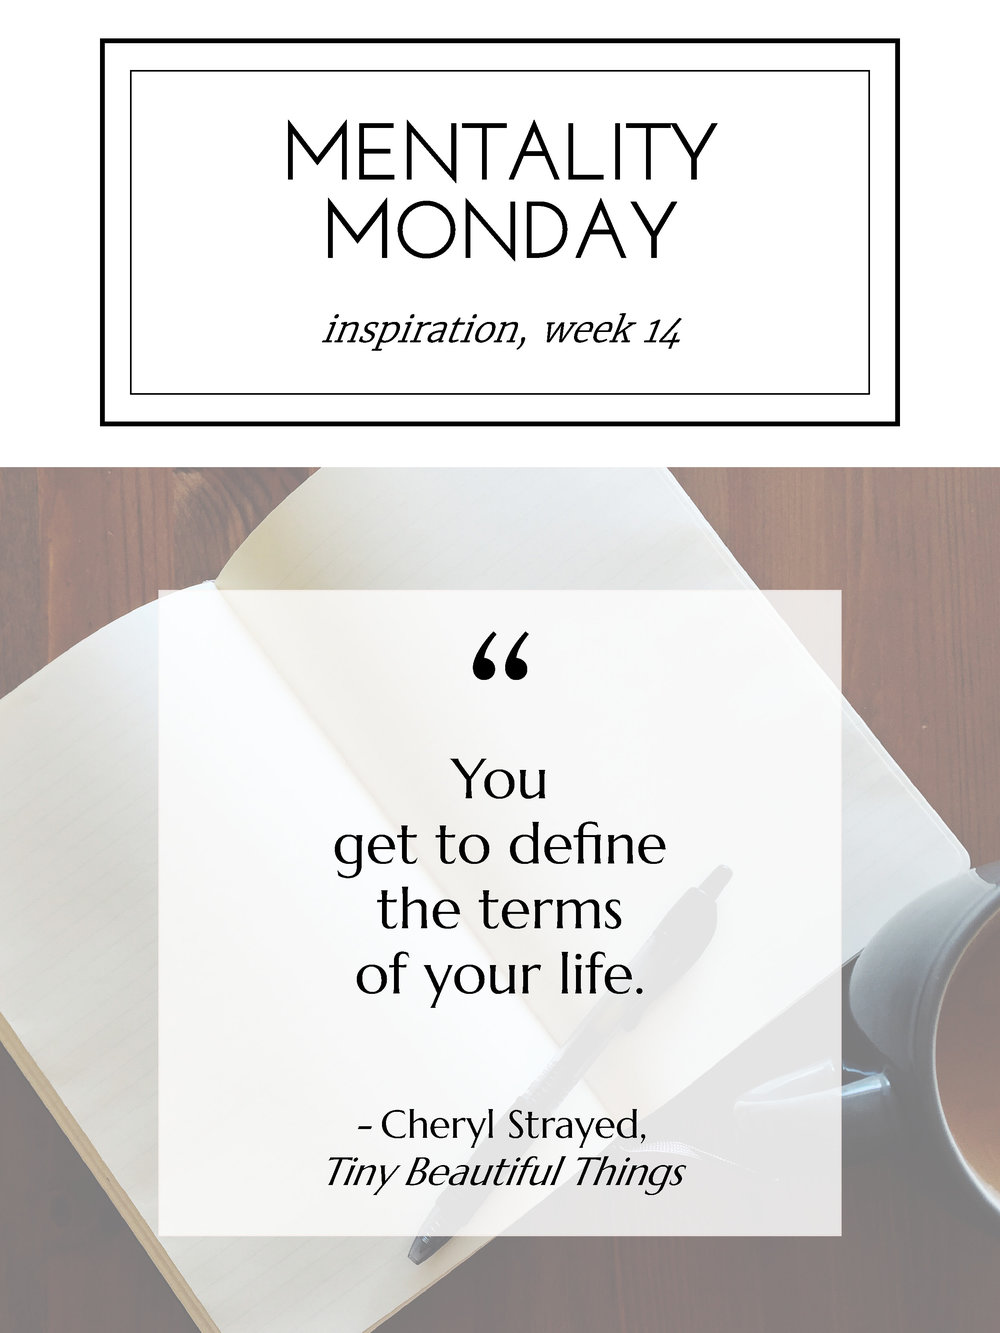 "Mentality Monday, weekly inspiration: ""You get to define the terms of your life."" - Cheryl Strayed, Tiny Beautiful Things"